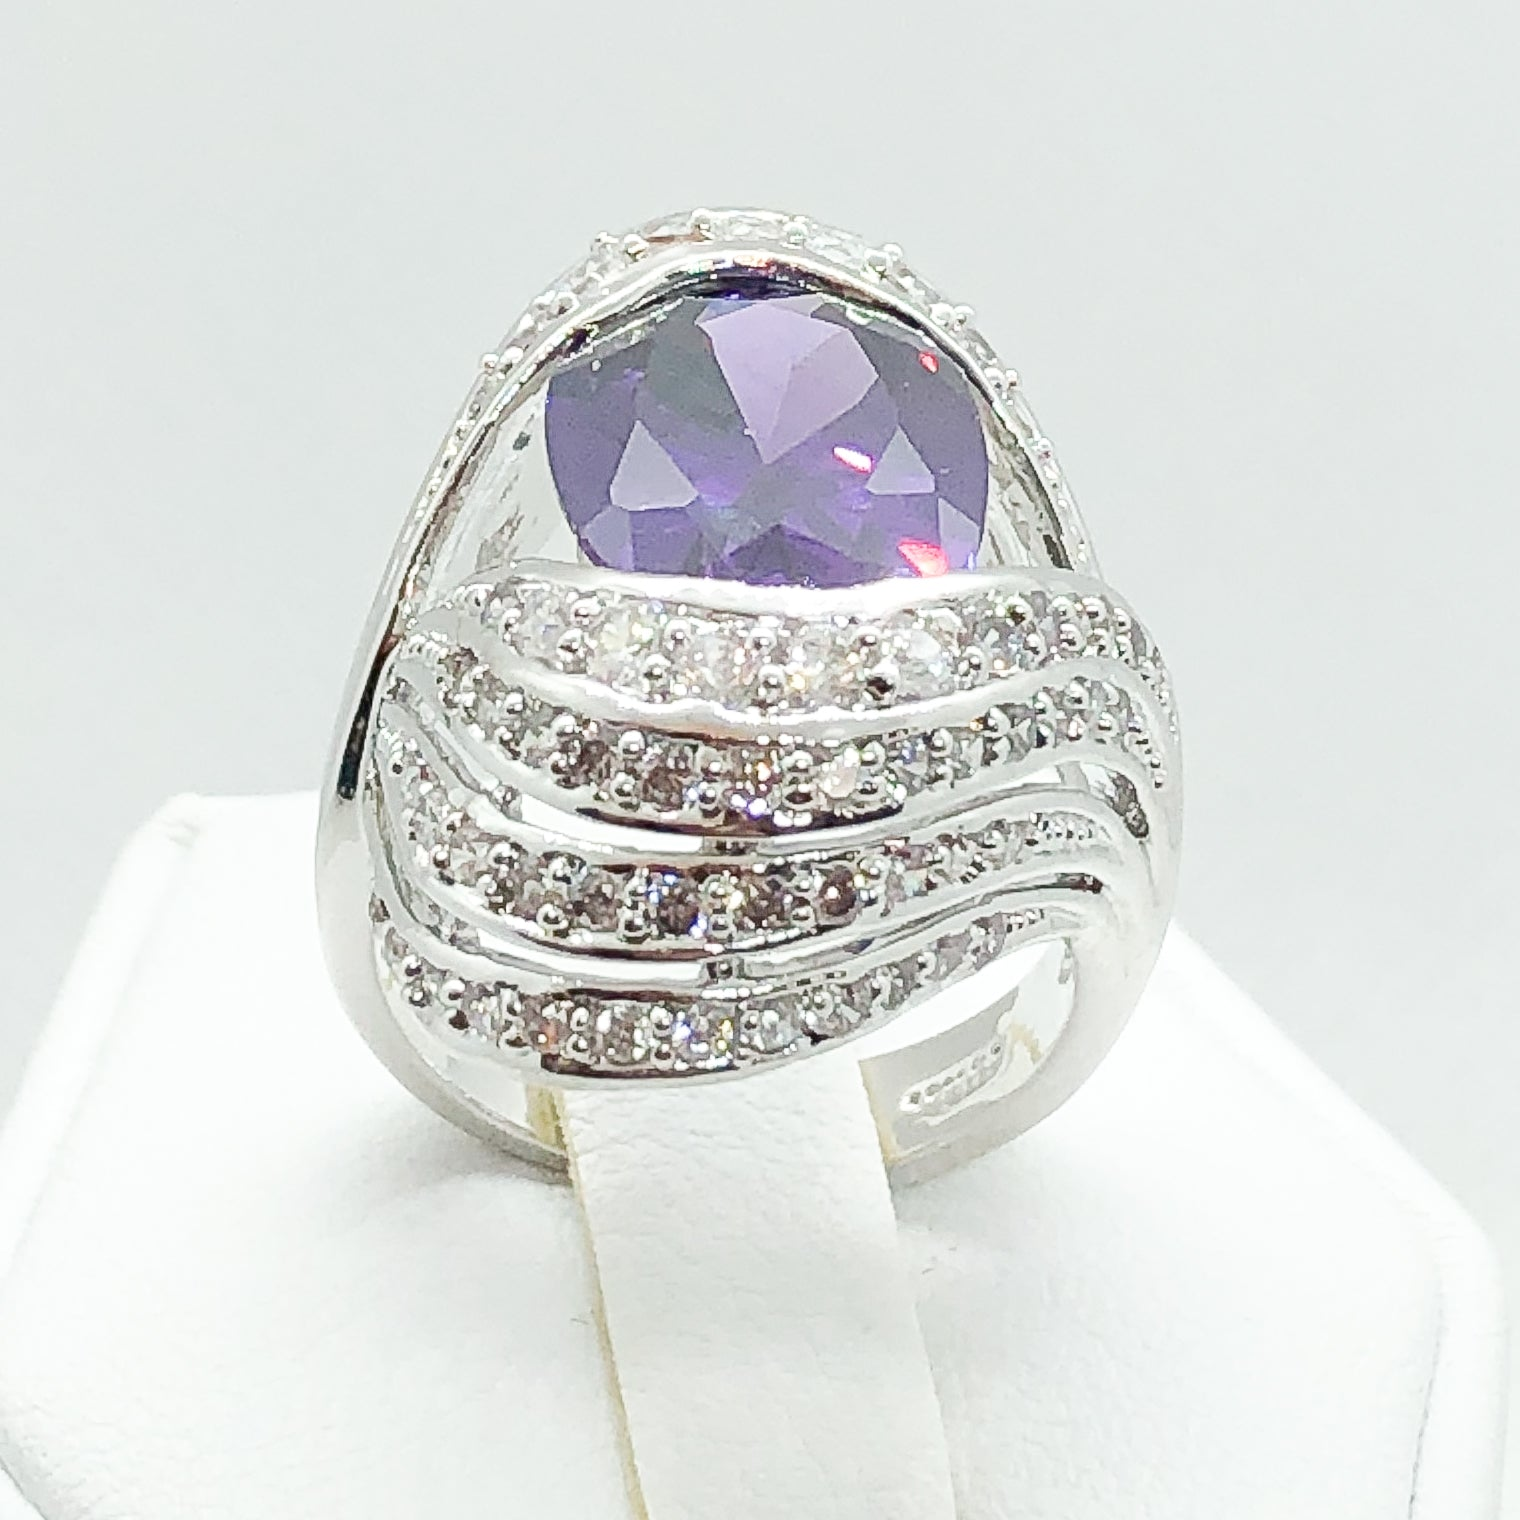 ID:R4535 Women Jewelry 18K White Gold GF Stunning Amethyst Center Stone with Clear Gemstone Accent Cocktail Ring Anniversary Gift